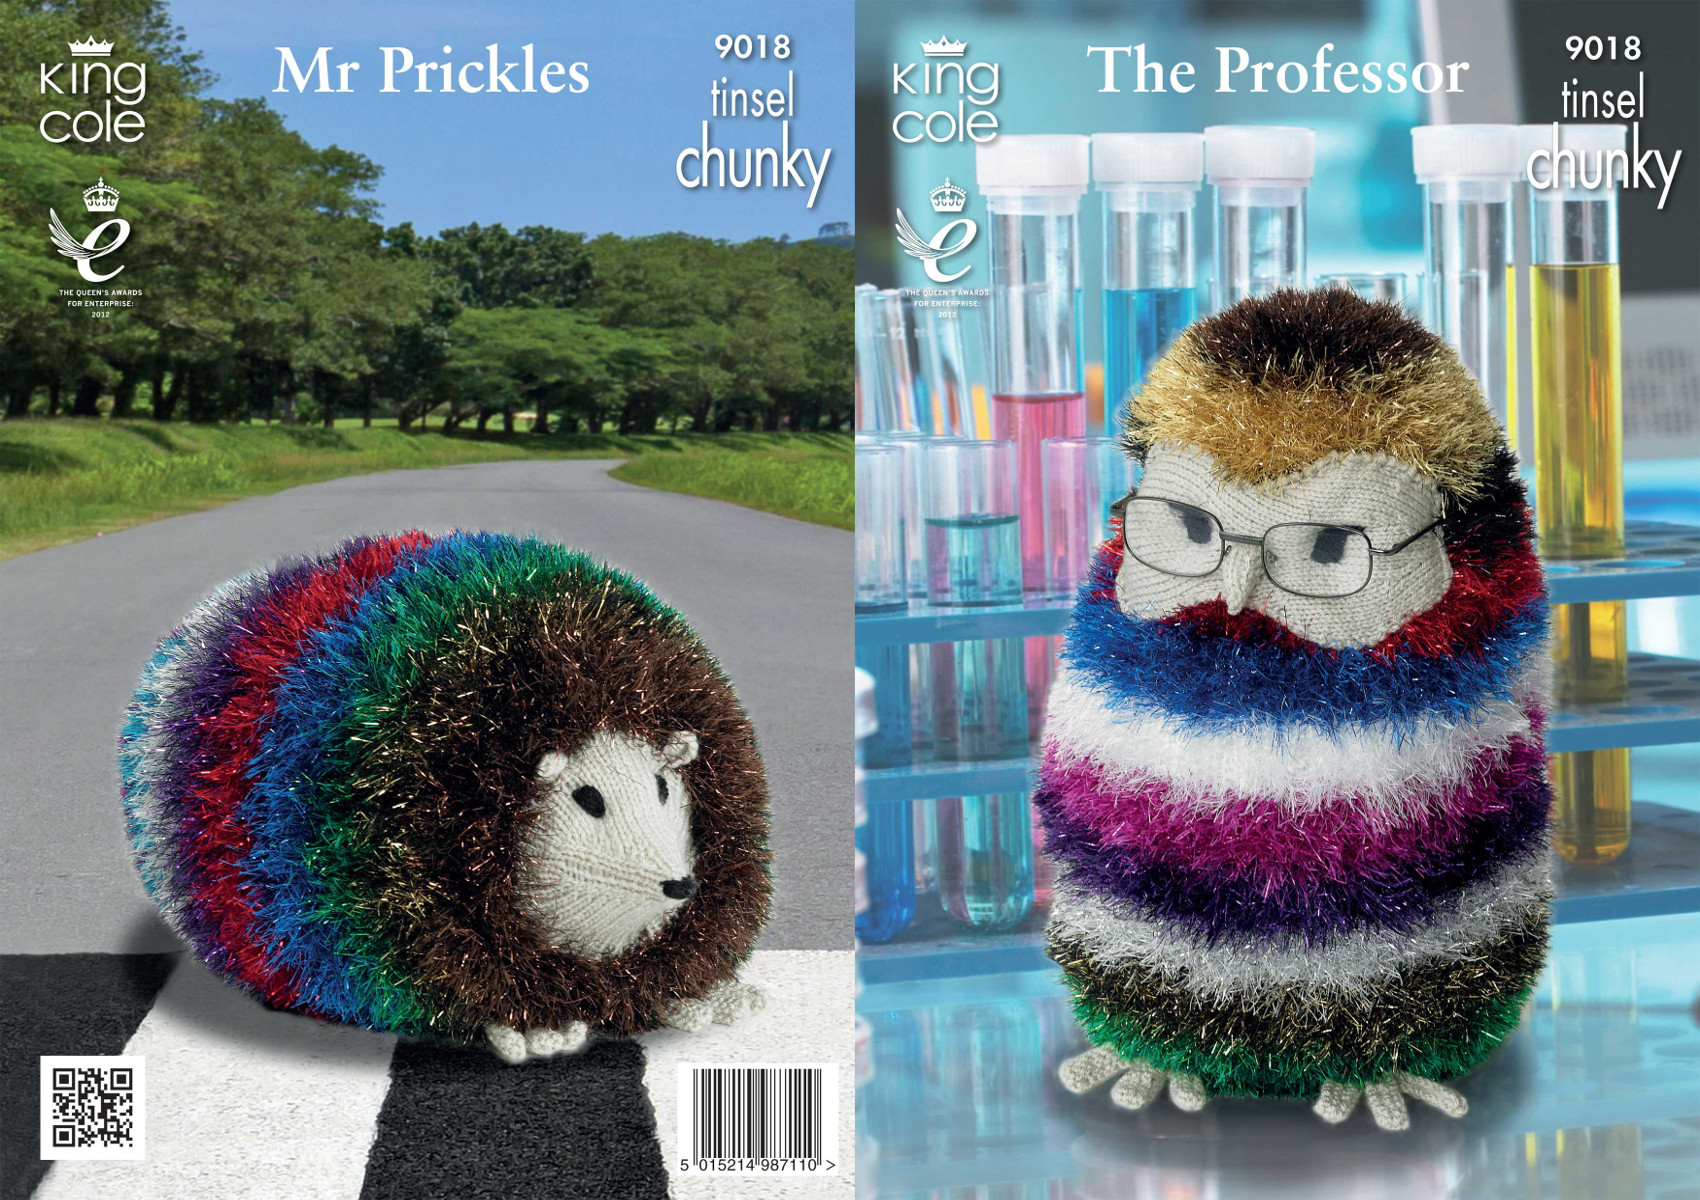 Knitting Patterns For Toys Uk Details About King Cole The Professor Owl Mr Prickles Hedgehog Tinsel Knitting Pattern 9018